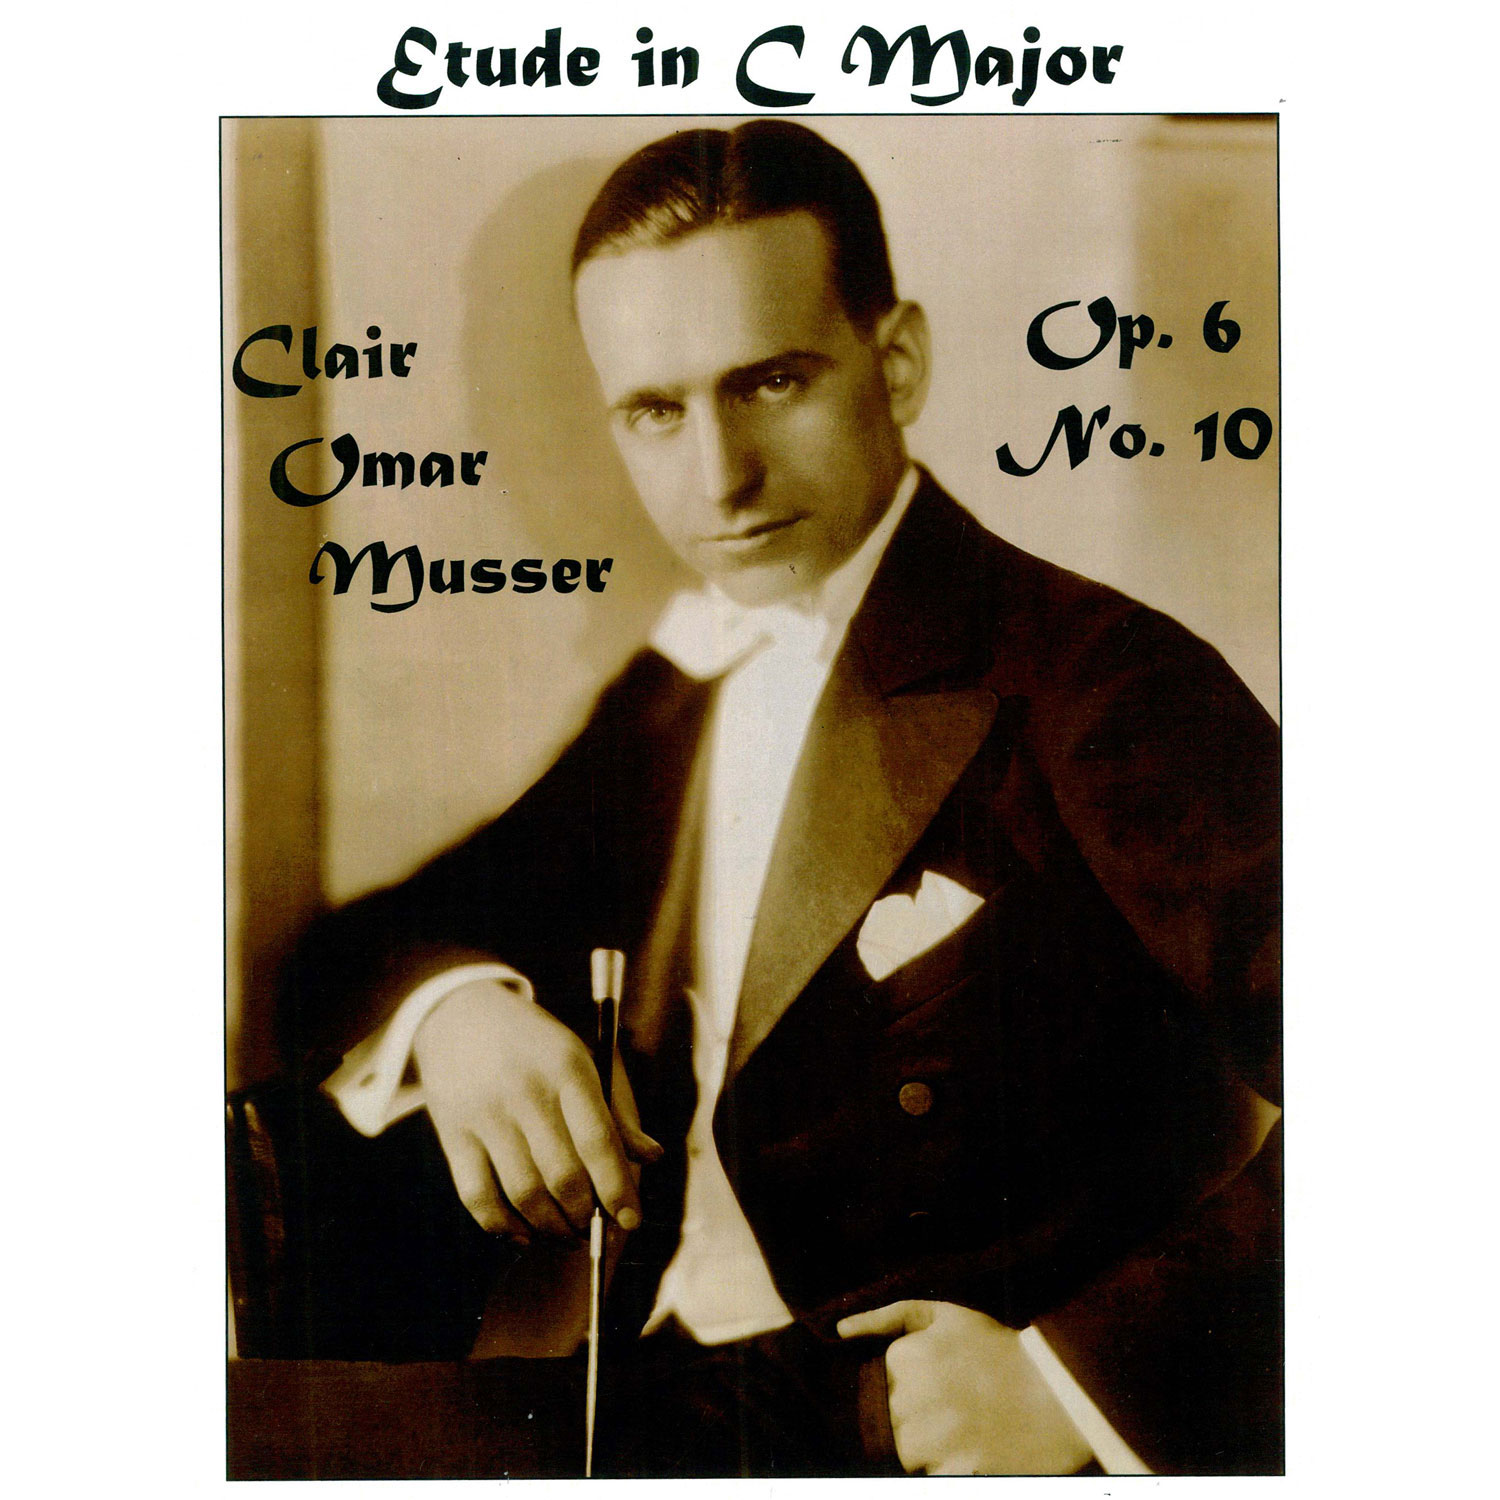 Etude in C Major Op. 6 No. 10 by Clair Omar Musser